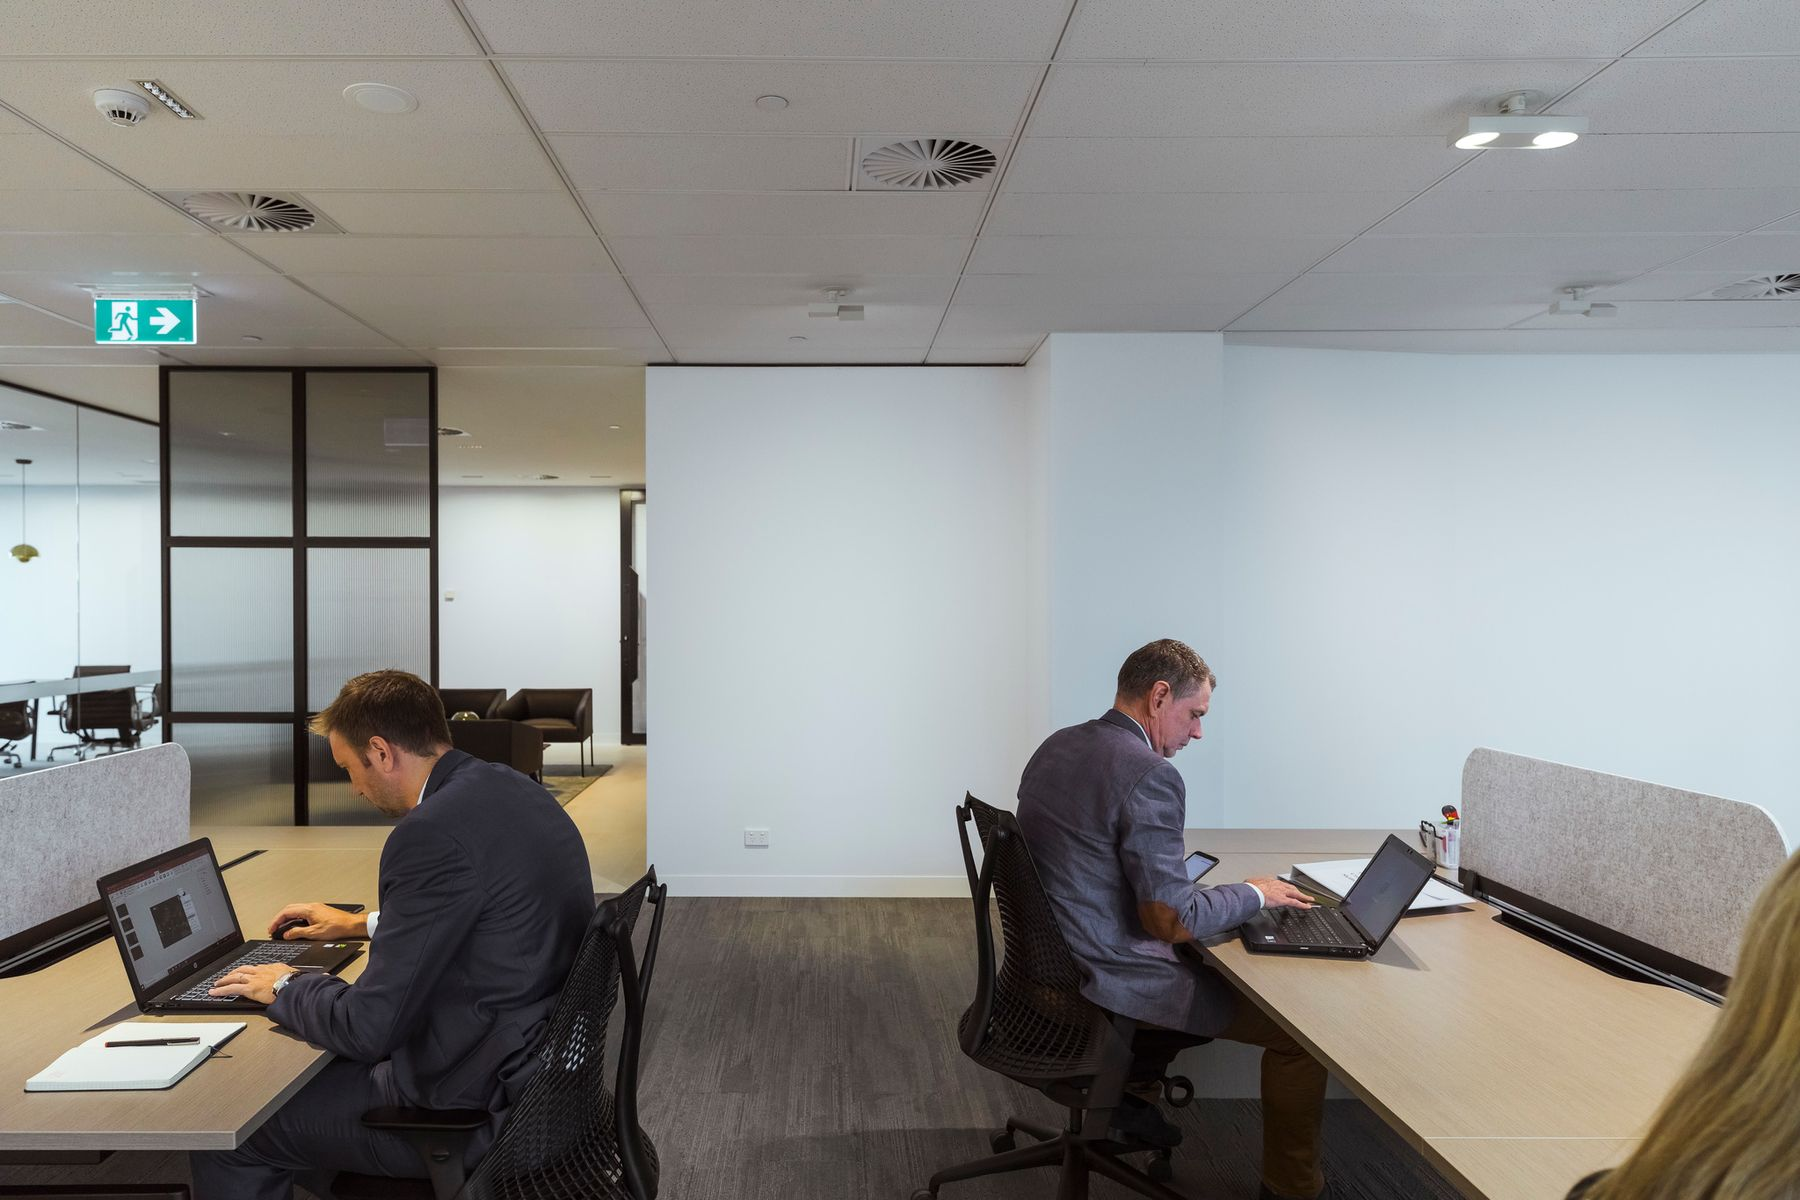 Memocorp Office. Architecture : Girvan Waugh, Sydney. Photographie : Jackie Chan, Sydney.